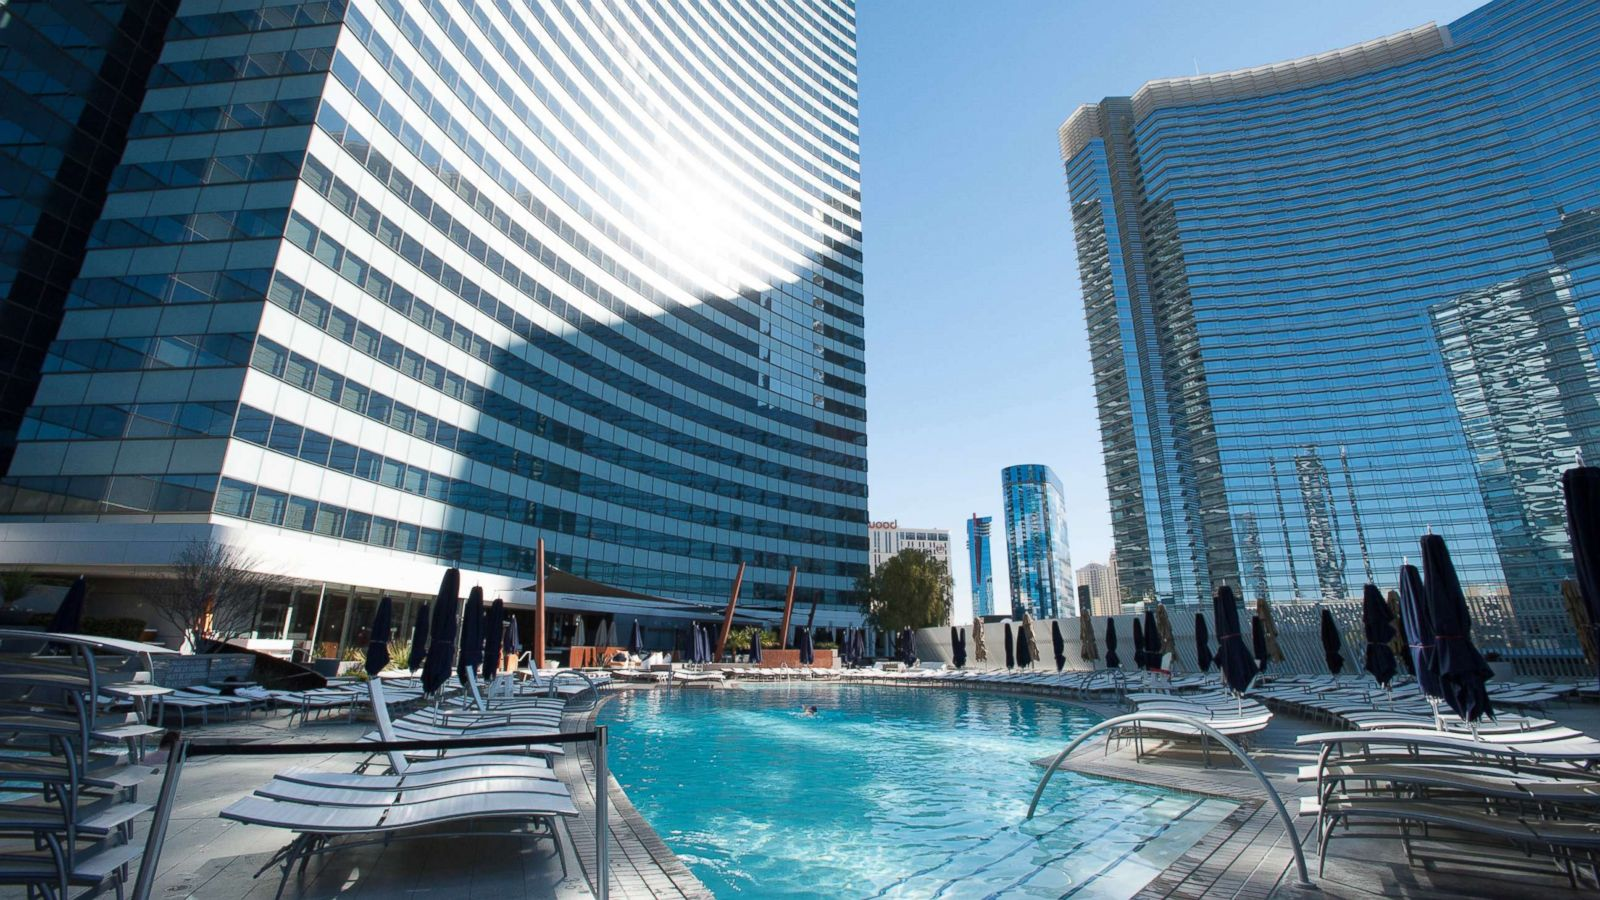 8 awesome Las Vegas hotels with no casinos - ABC News